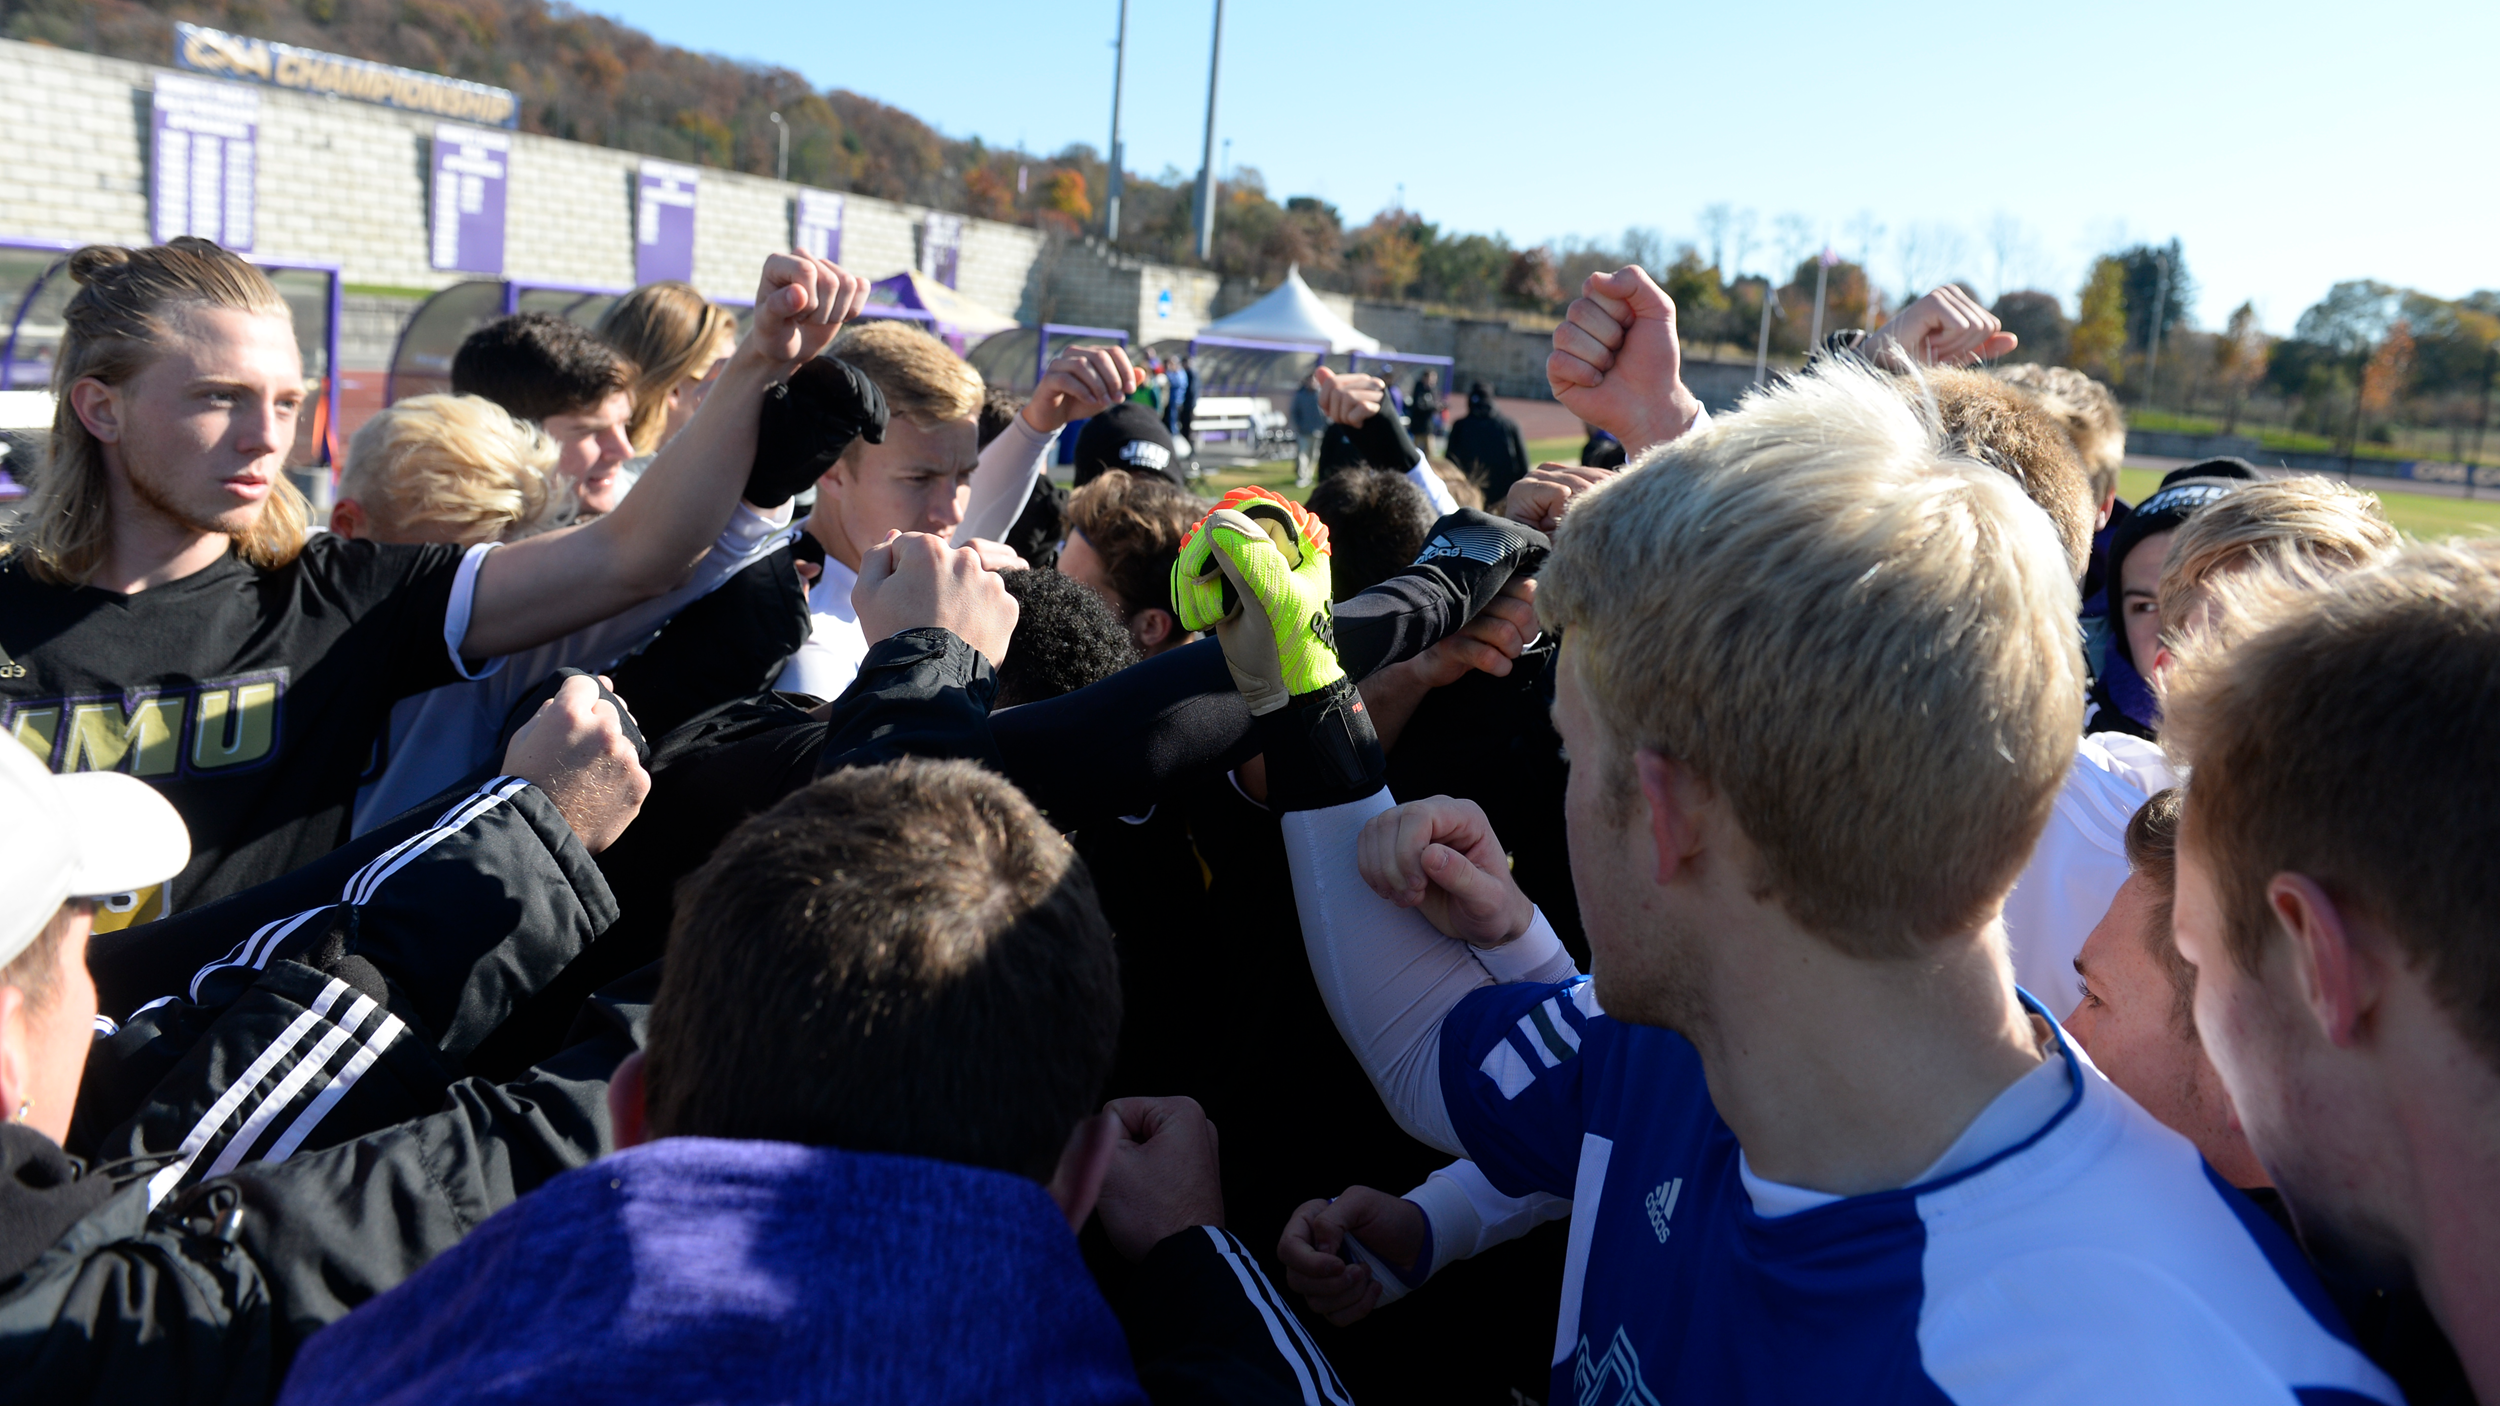 Men's Soccer: Dukes Face UNC in Second Round